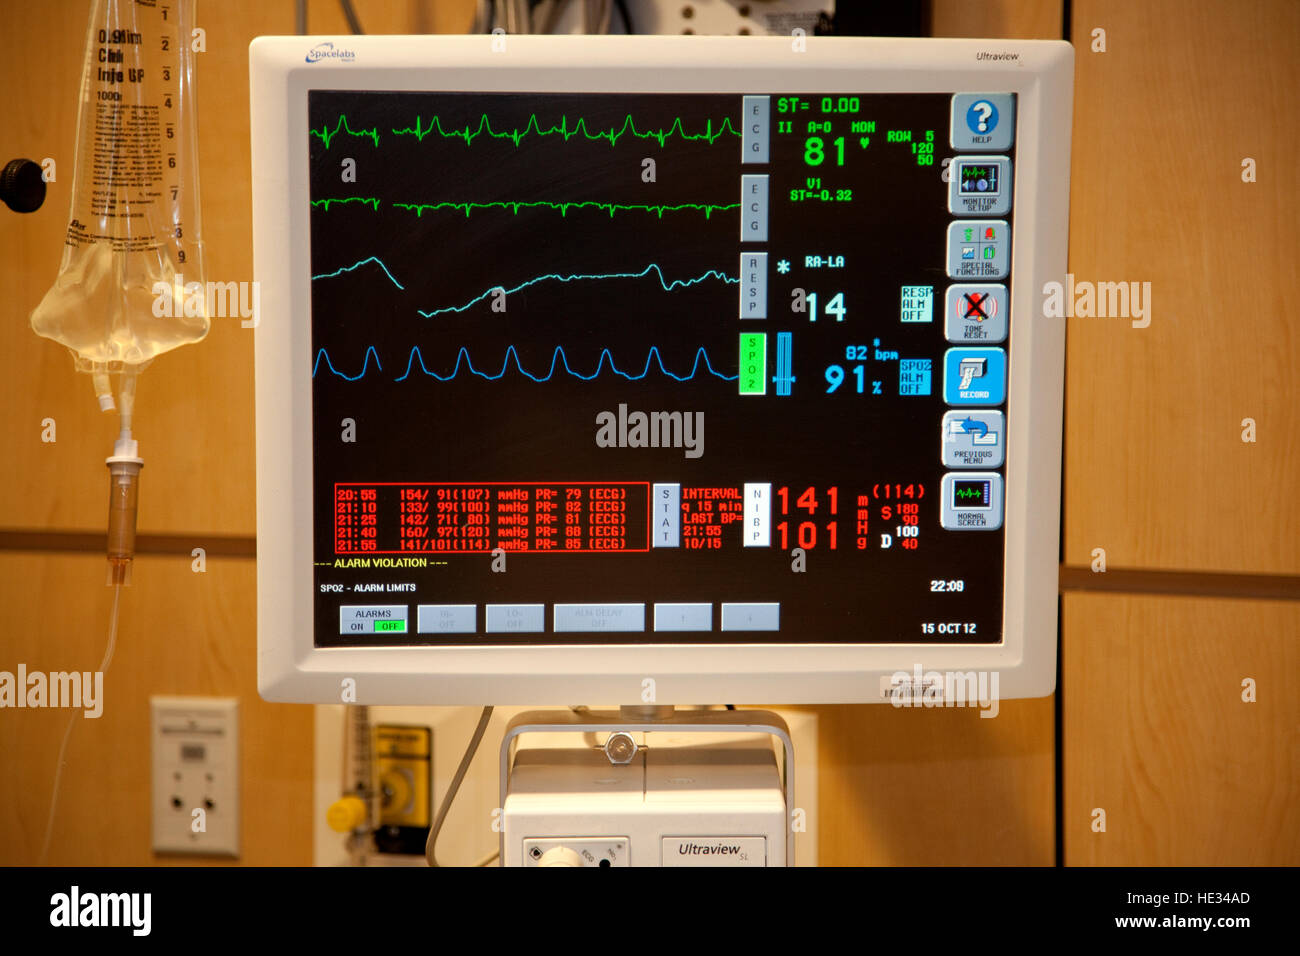 Hospital Ultraview patient bedside vital sign monitor. Fergus Falls Minnesota MN USA - Stock Image